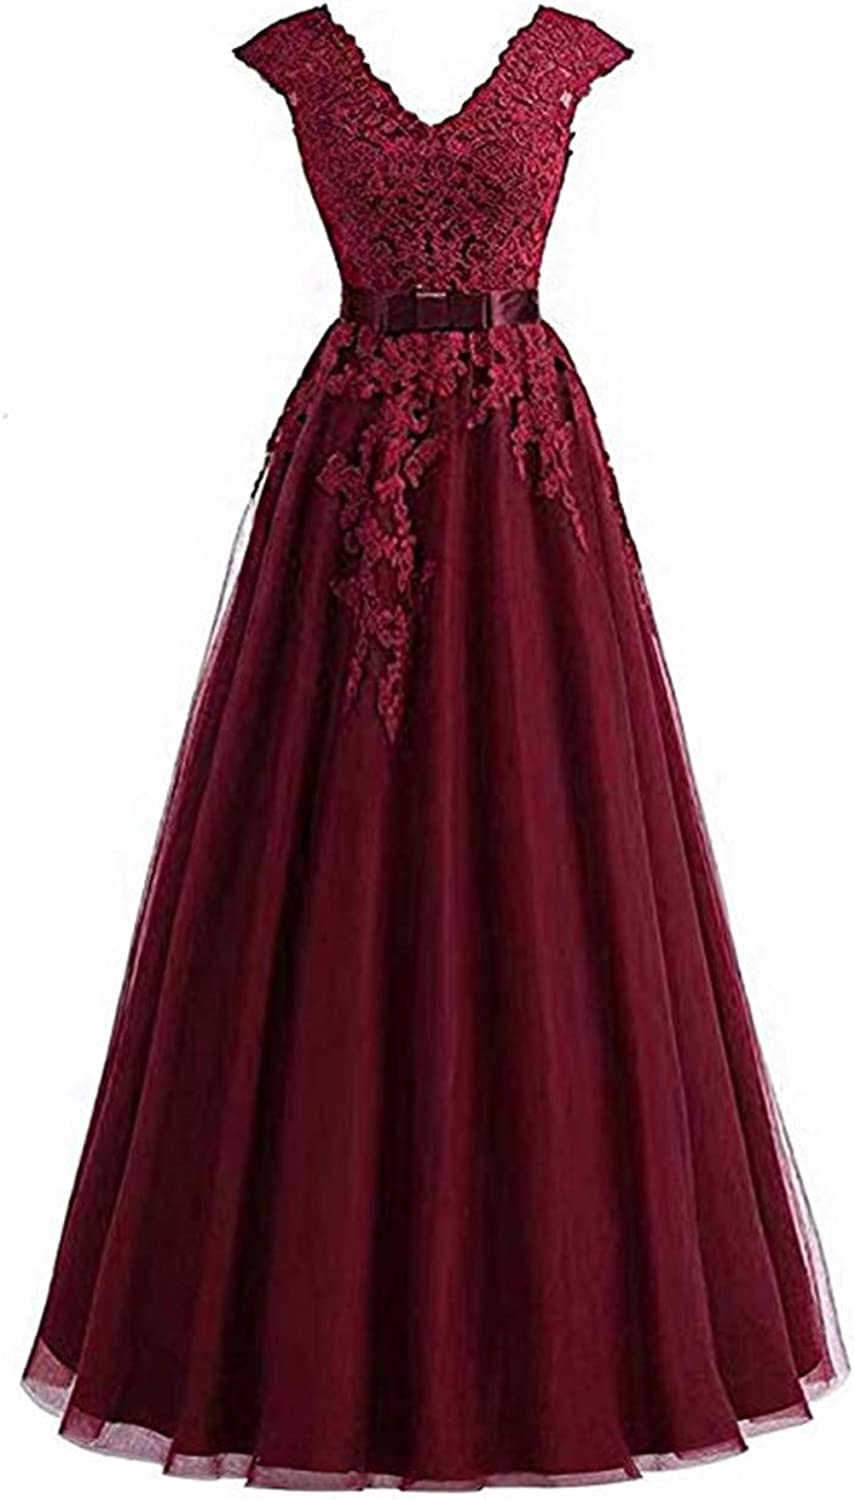 Scarisee Womens VNeck Lace Appliqued Prom Evening Dresses Formal Party GownA254